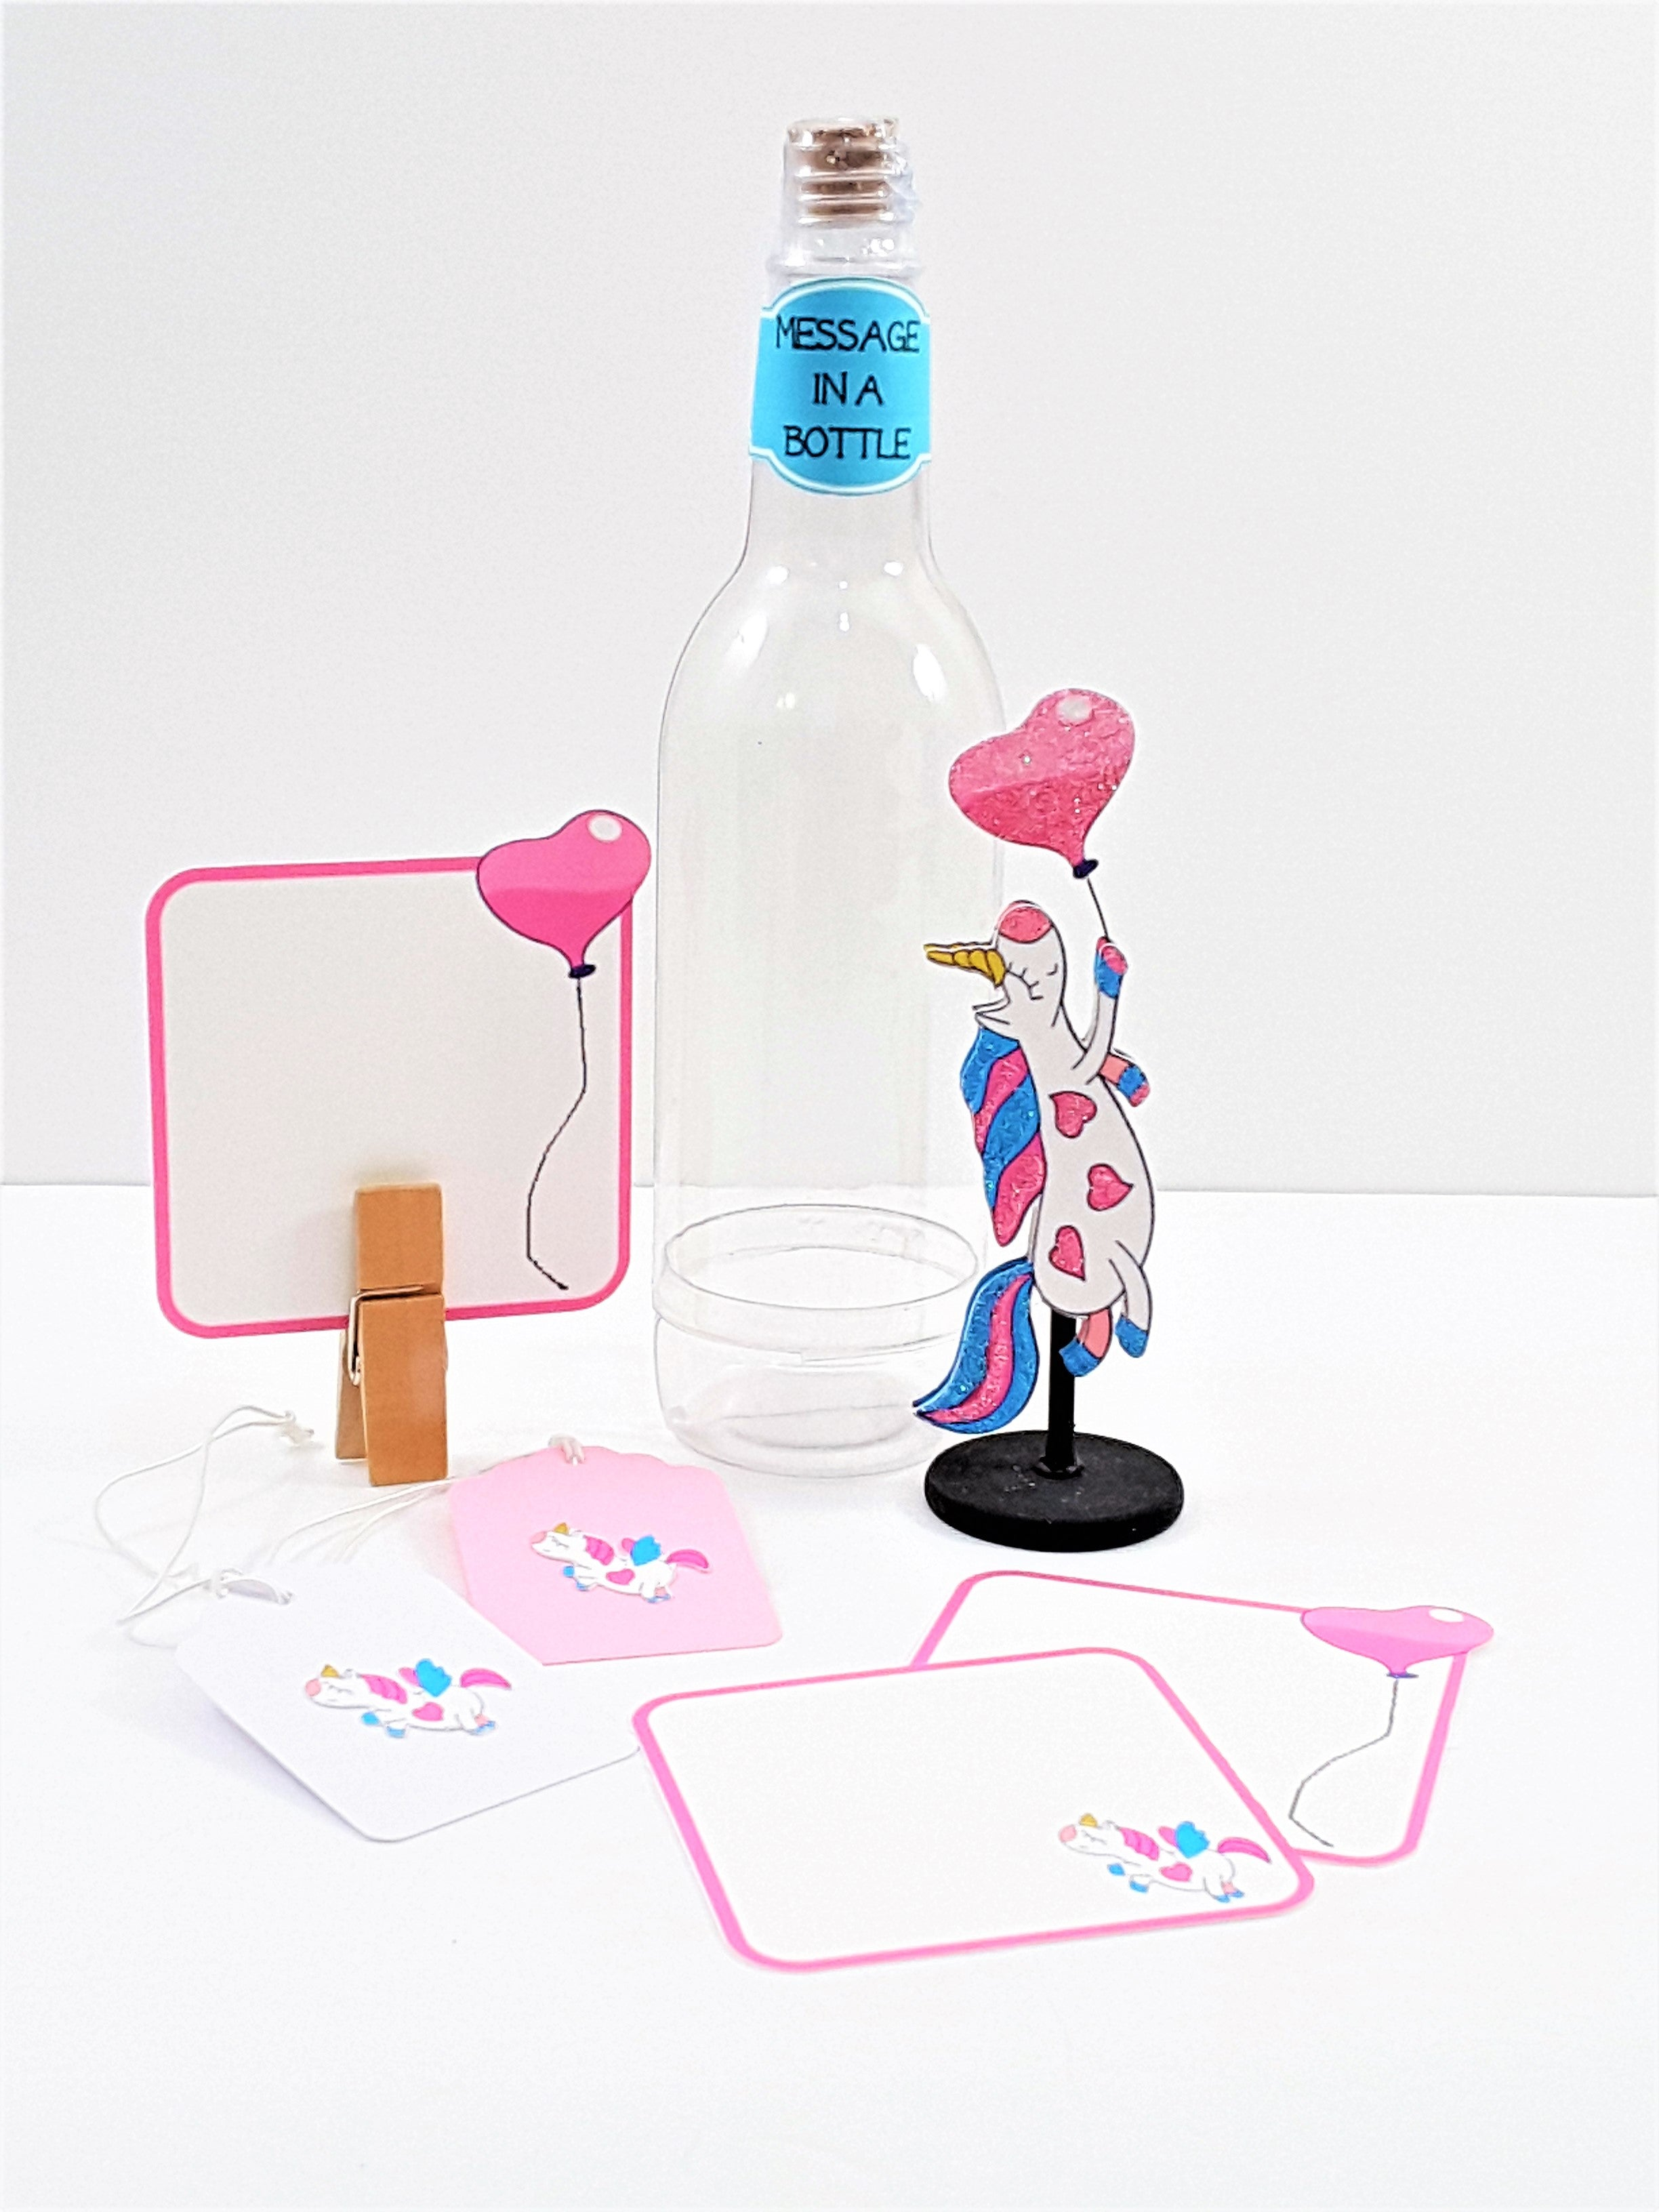 3D Personalized Gittered Unicorn Card Message in a Bottle - TheLastWordBish.com